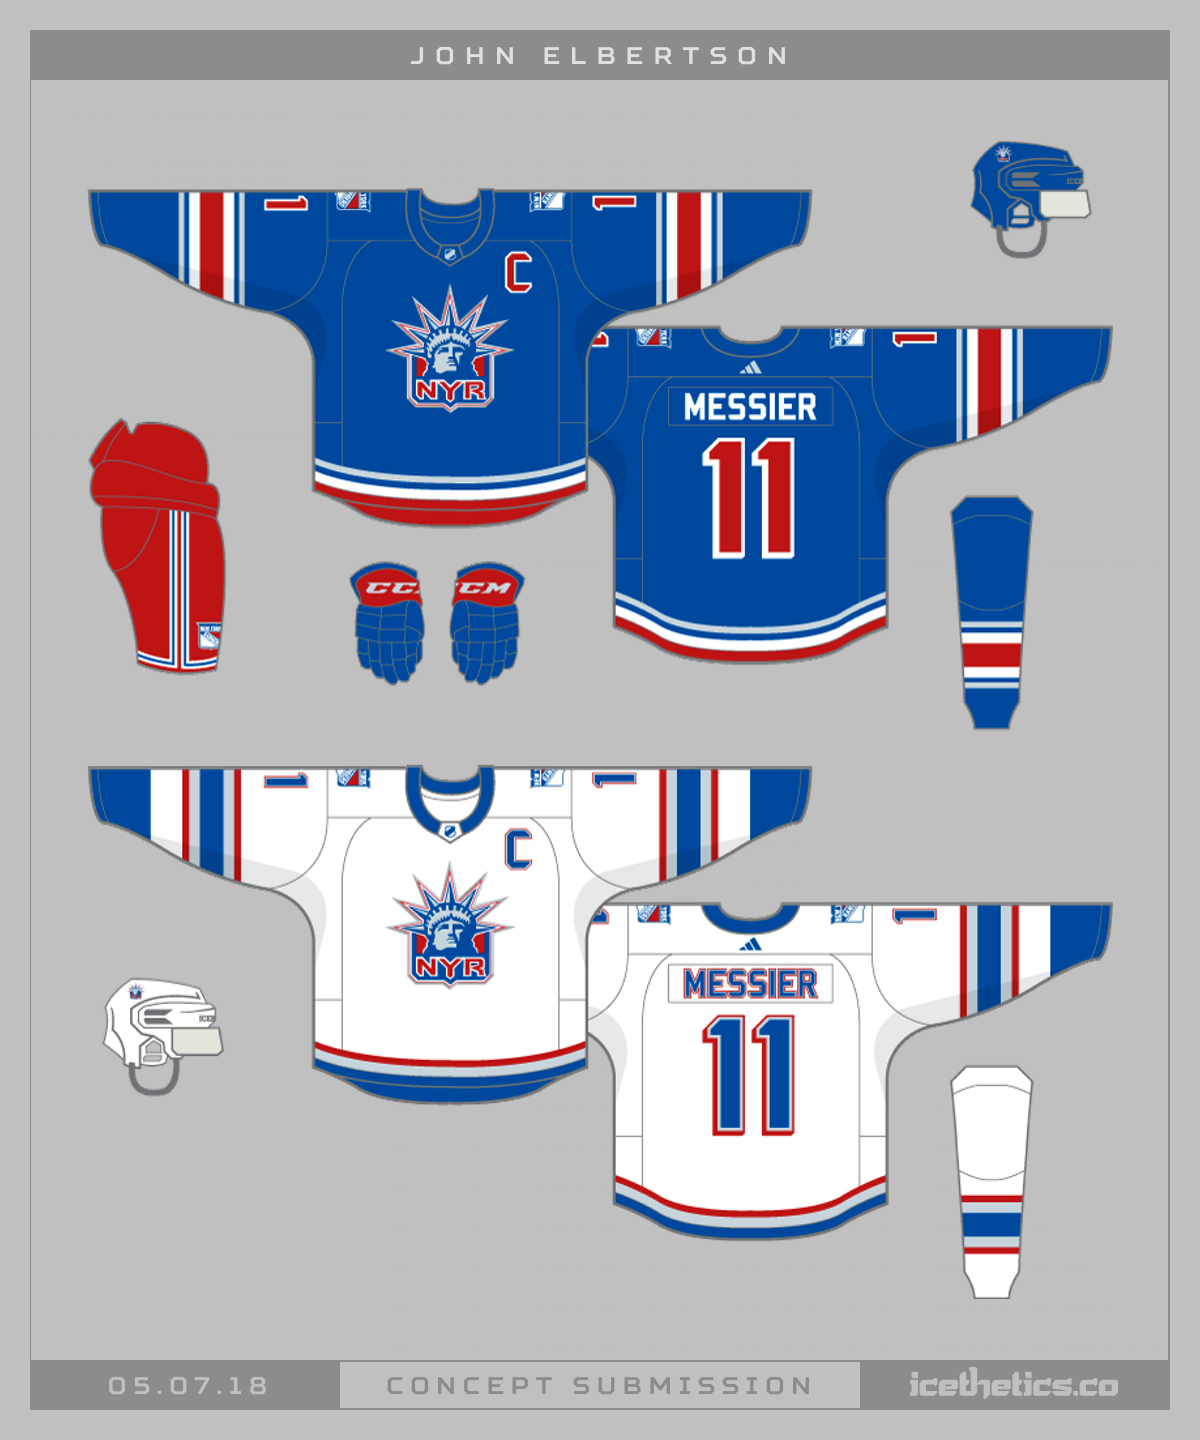 0507-johnelbertson-nyr.png